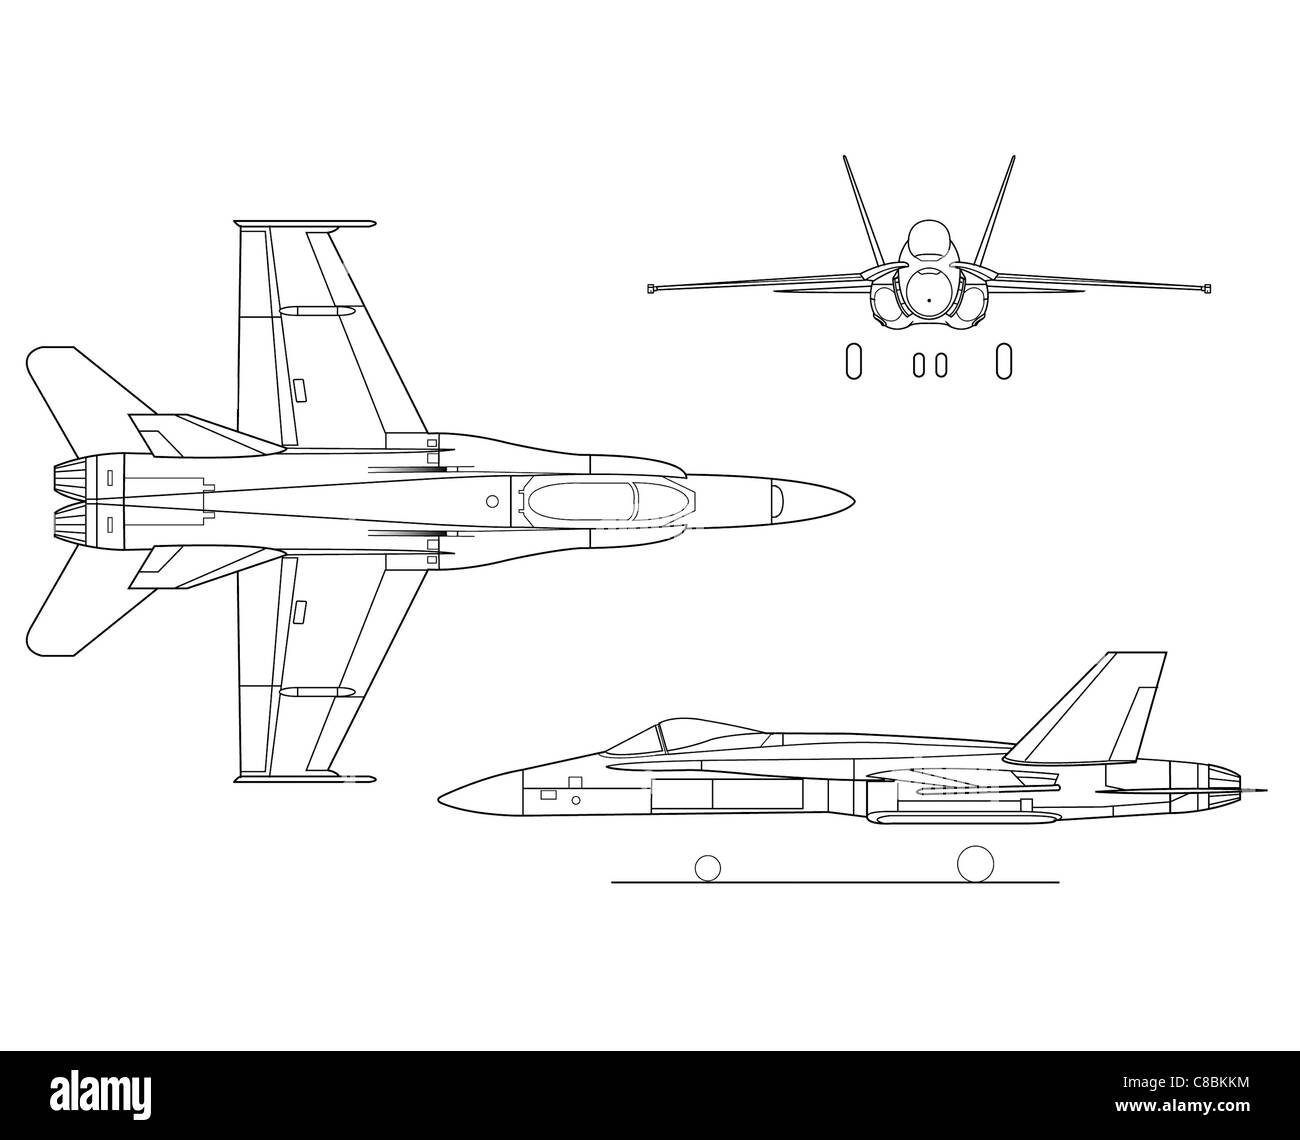 Line Drawing Airplane : View aircraft line art drawing the f hornet stock